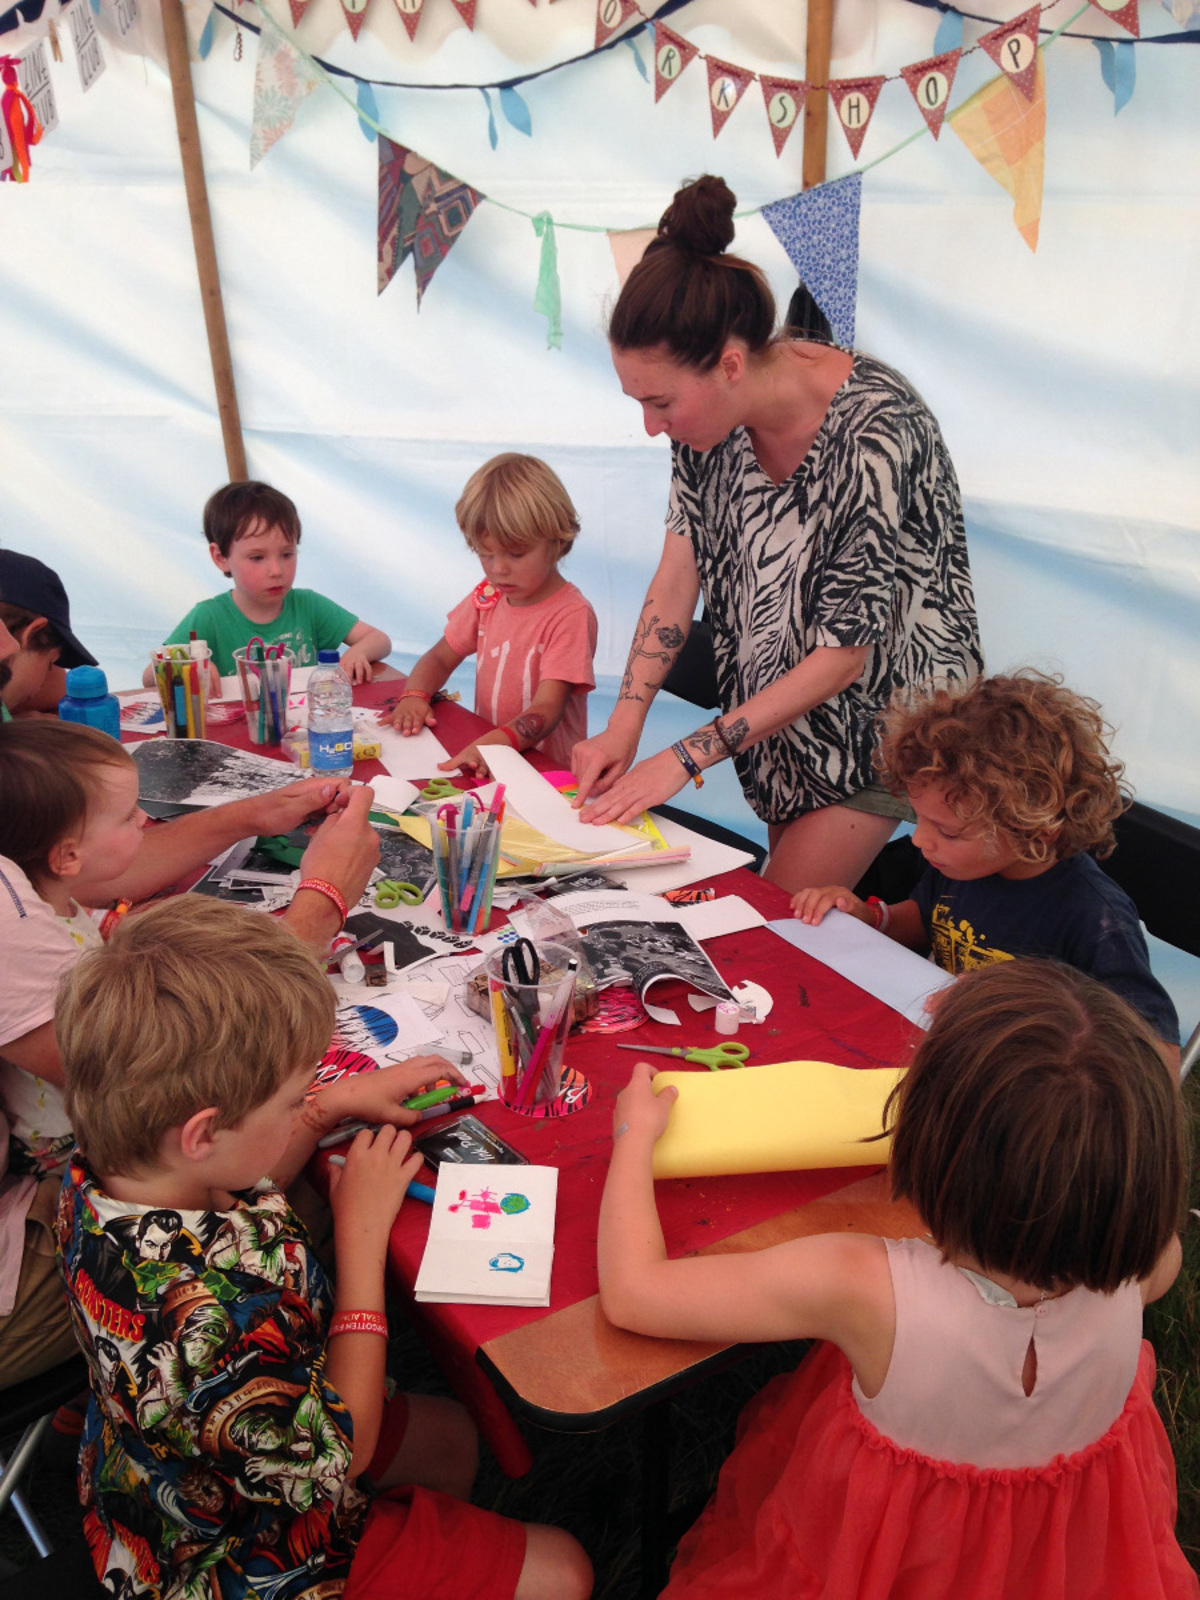 Harriet making zines with children at Forgotten Fields Festival